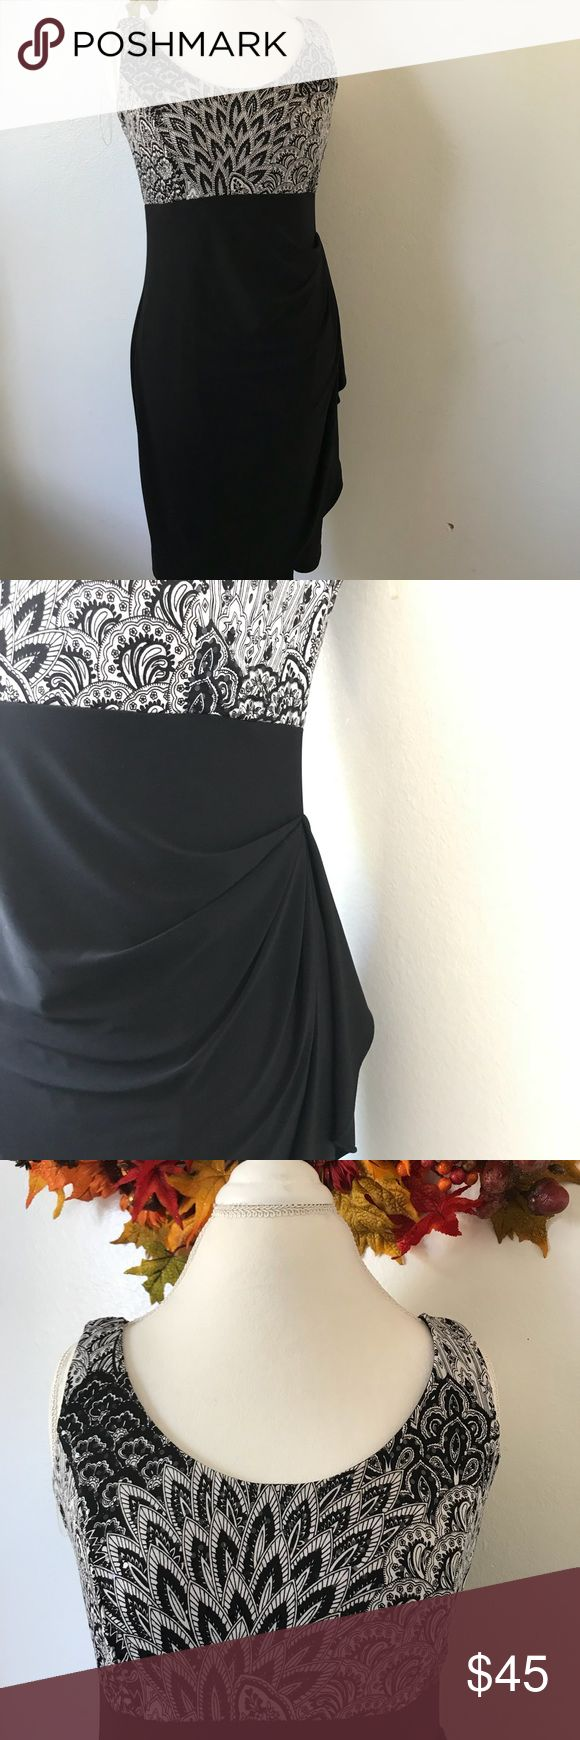 Dress Barn Black and white Sequin Dress w/ Jacket Has paisley designs . Comes with a jacket . Worn once! Jacket was never worn. Still has tag attached on that piece . Armpit to armpit 17'. Shoulder to hem 38'. Has a great design on dress . Dress Barn Dresses Midi